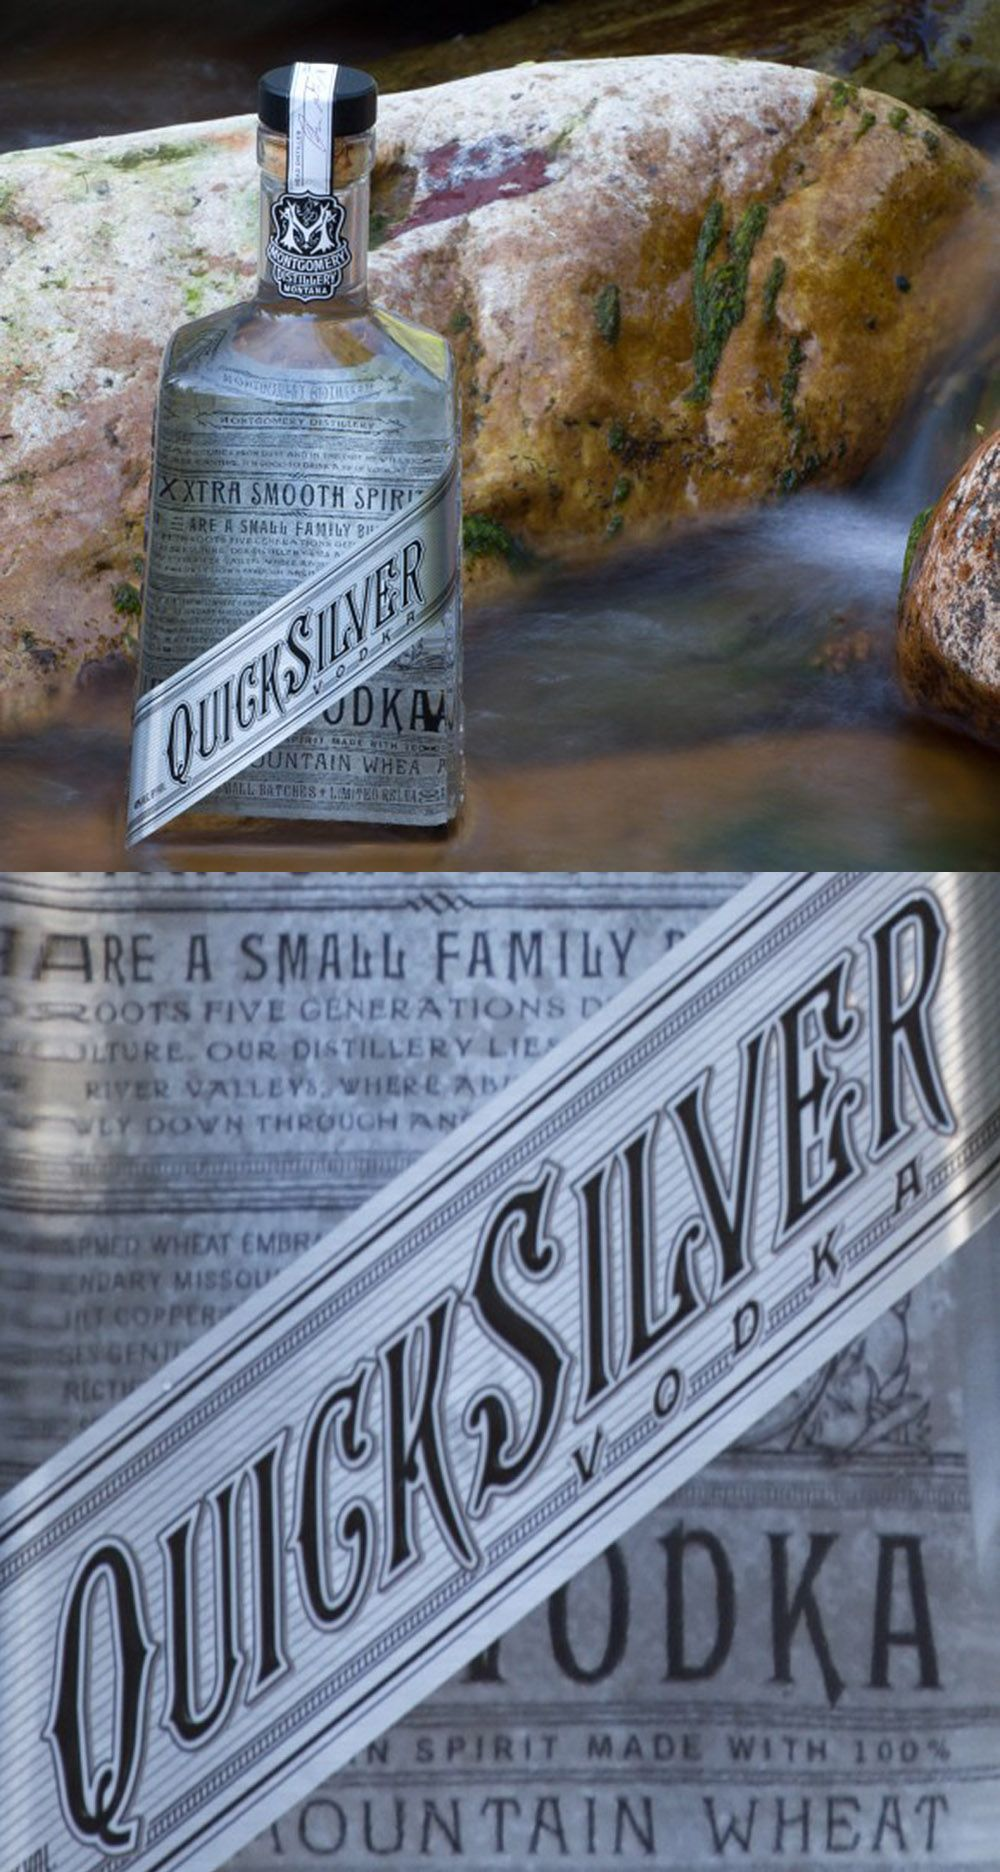 Quicksilver Vodka